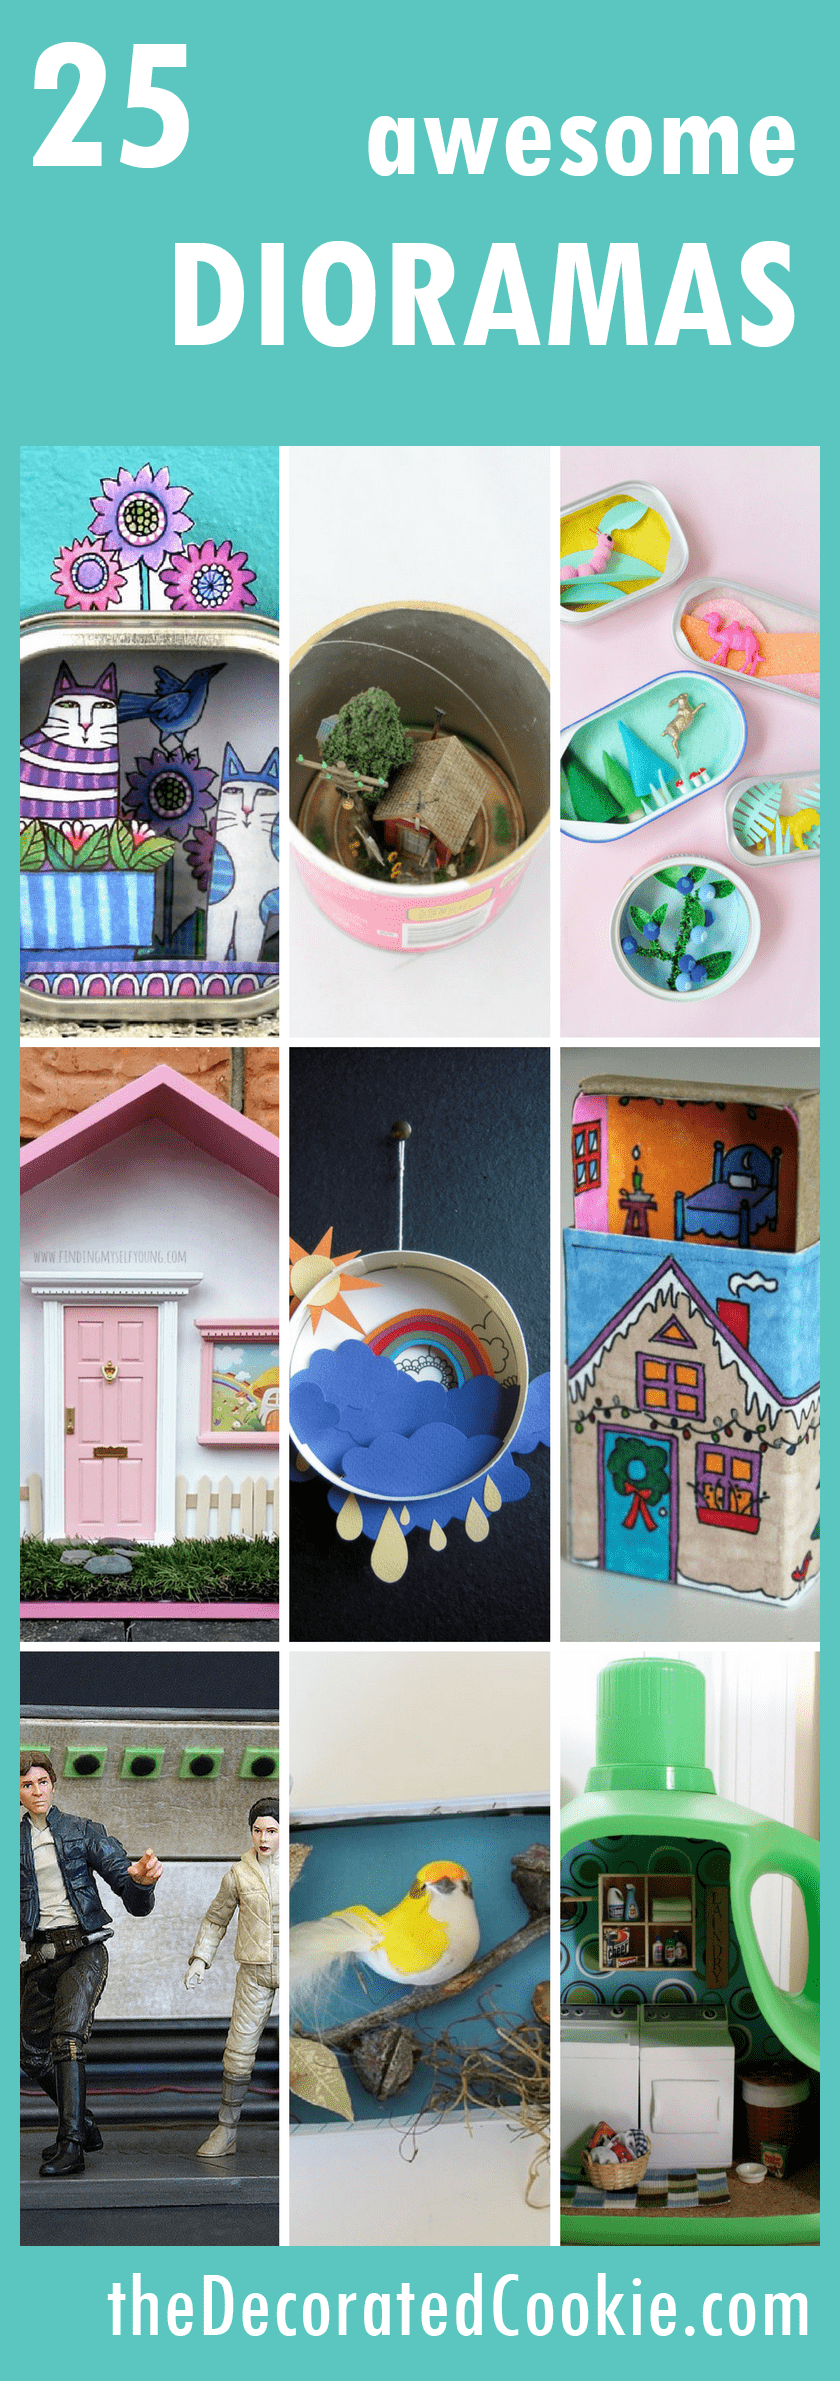 25 awesome dioramas to make, to buy, or to check out for ideas